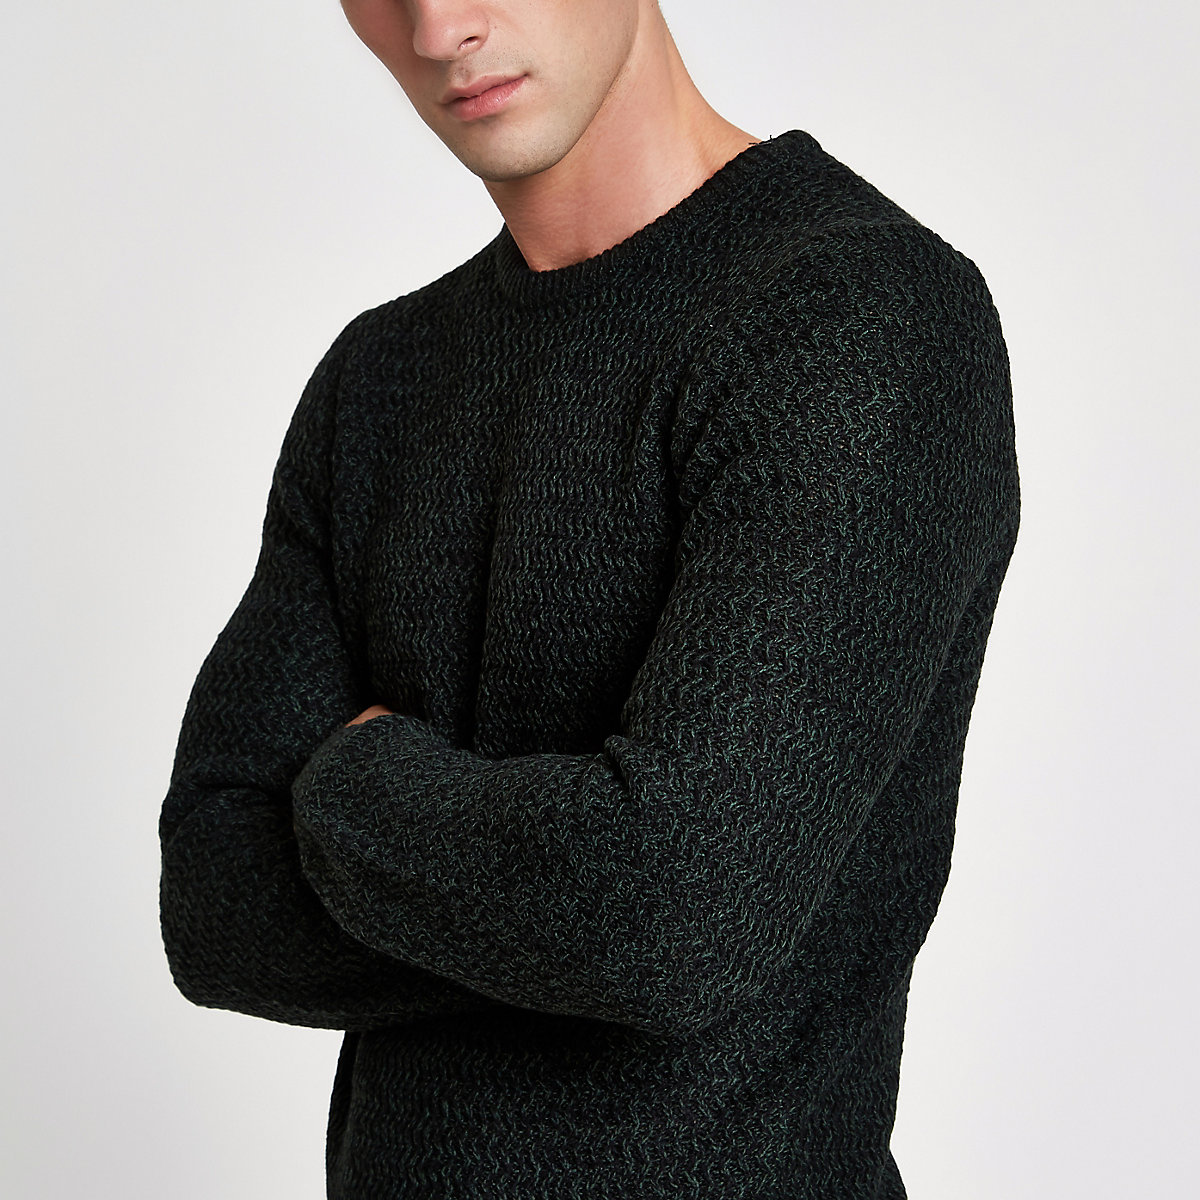 Green knit slim fit crew neck sweater